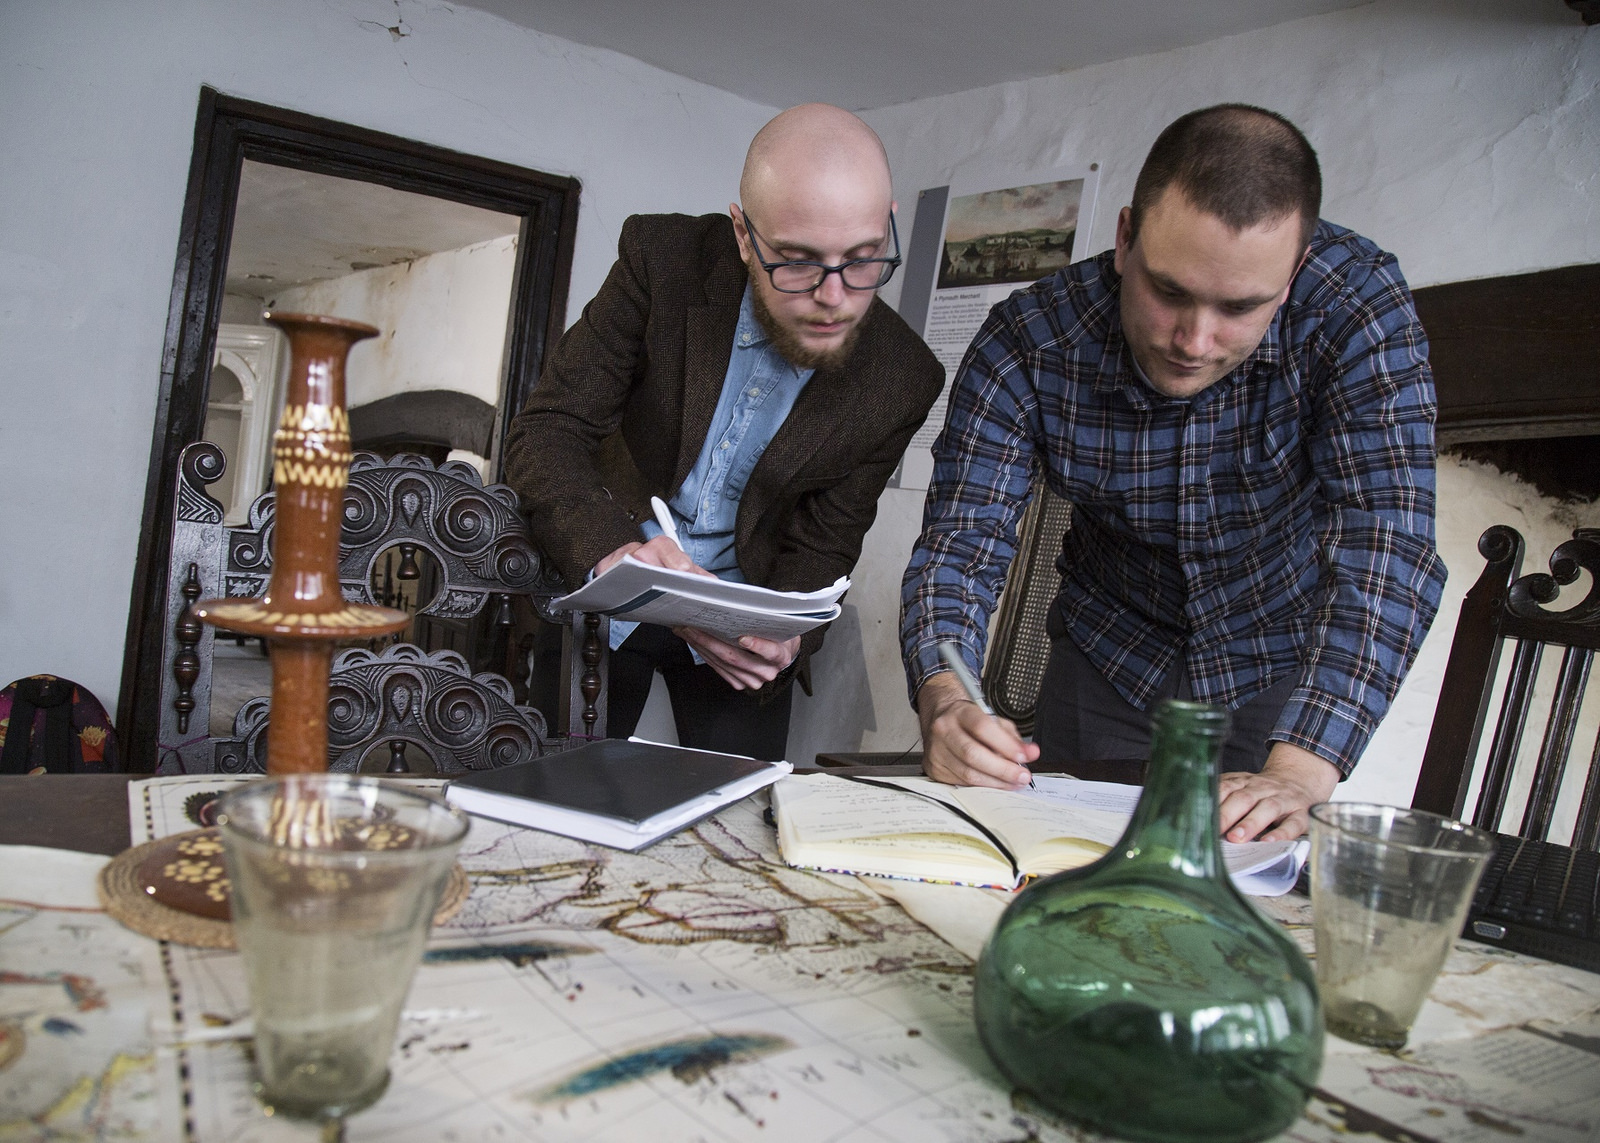 Two writers lean over a table in an old-fashioned house, making and comparing notes.